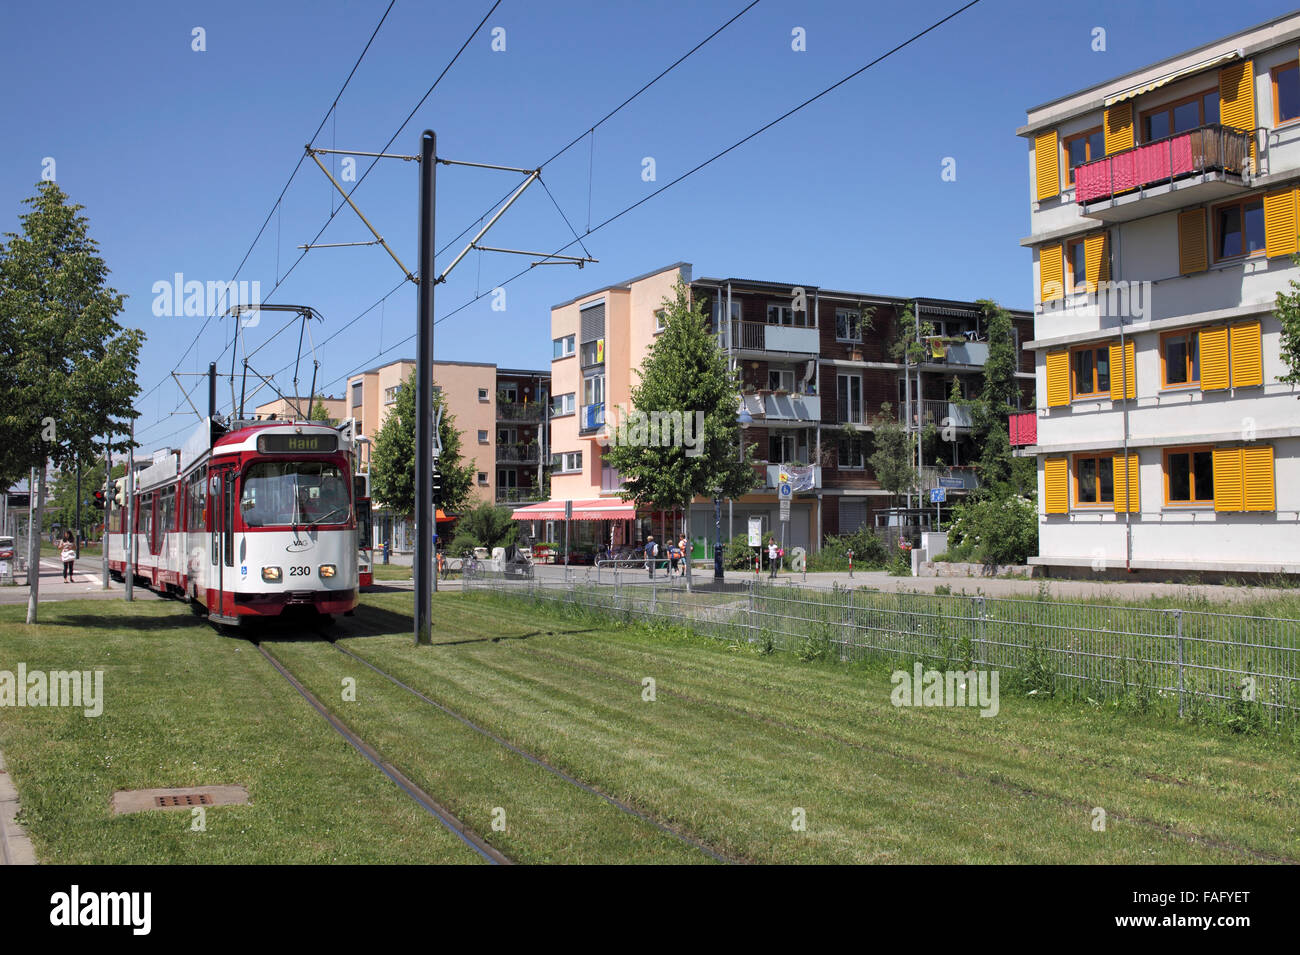 tram and housing in the green suburb of vauban freiburg im breisgau stock photo 92549264 alamy. Black Bedroom Furniture Sets. Home Design Ideas